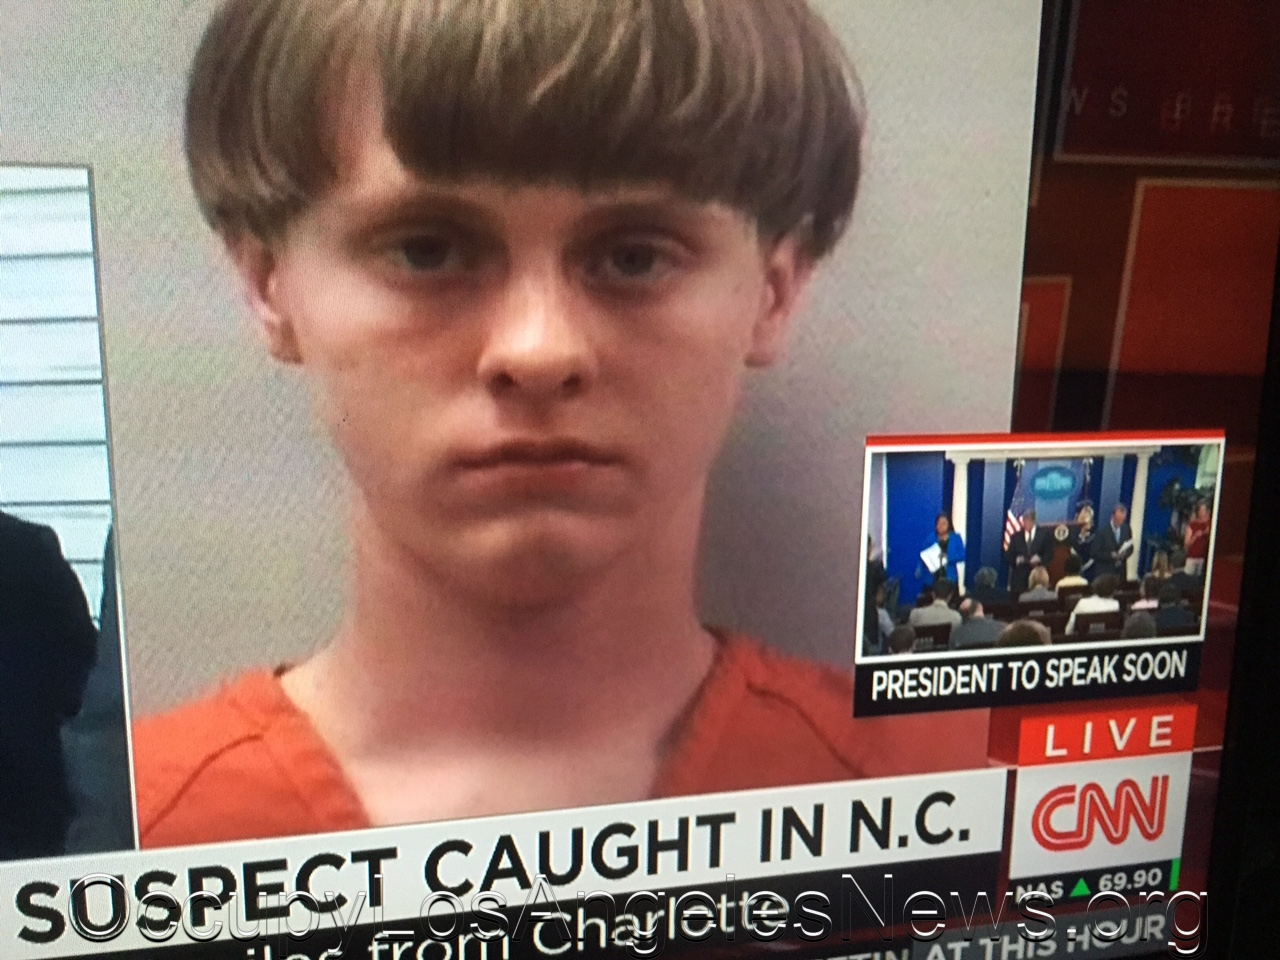 South Carolina White Supremacist Dylann Roof Said To Have